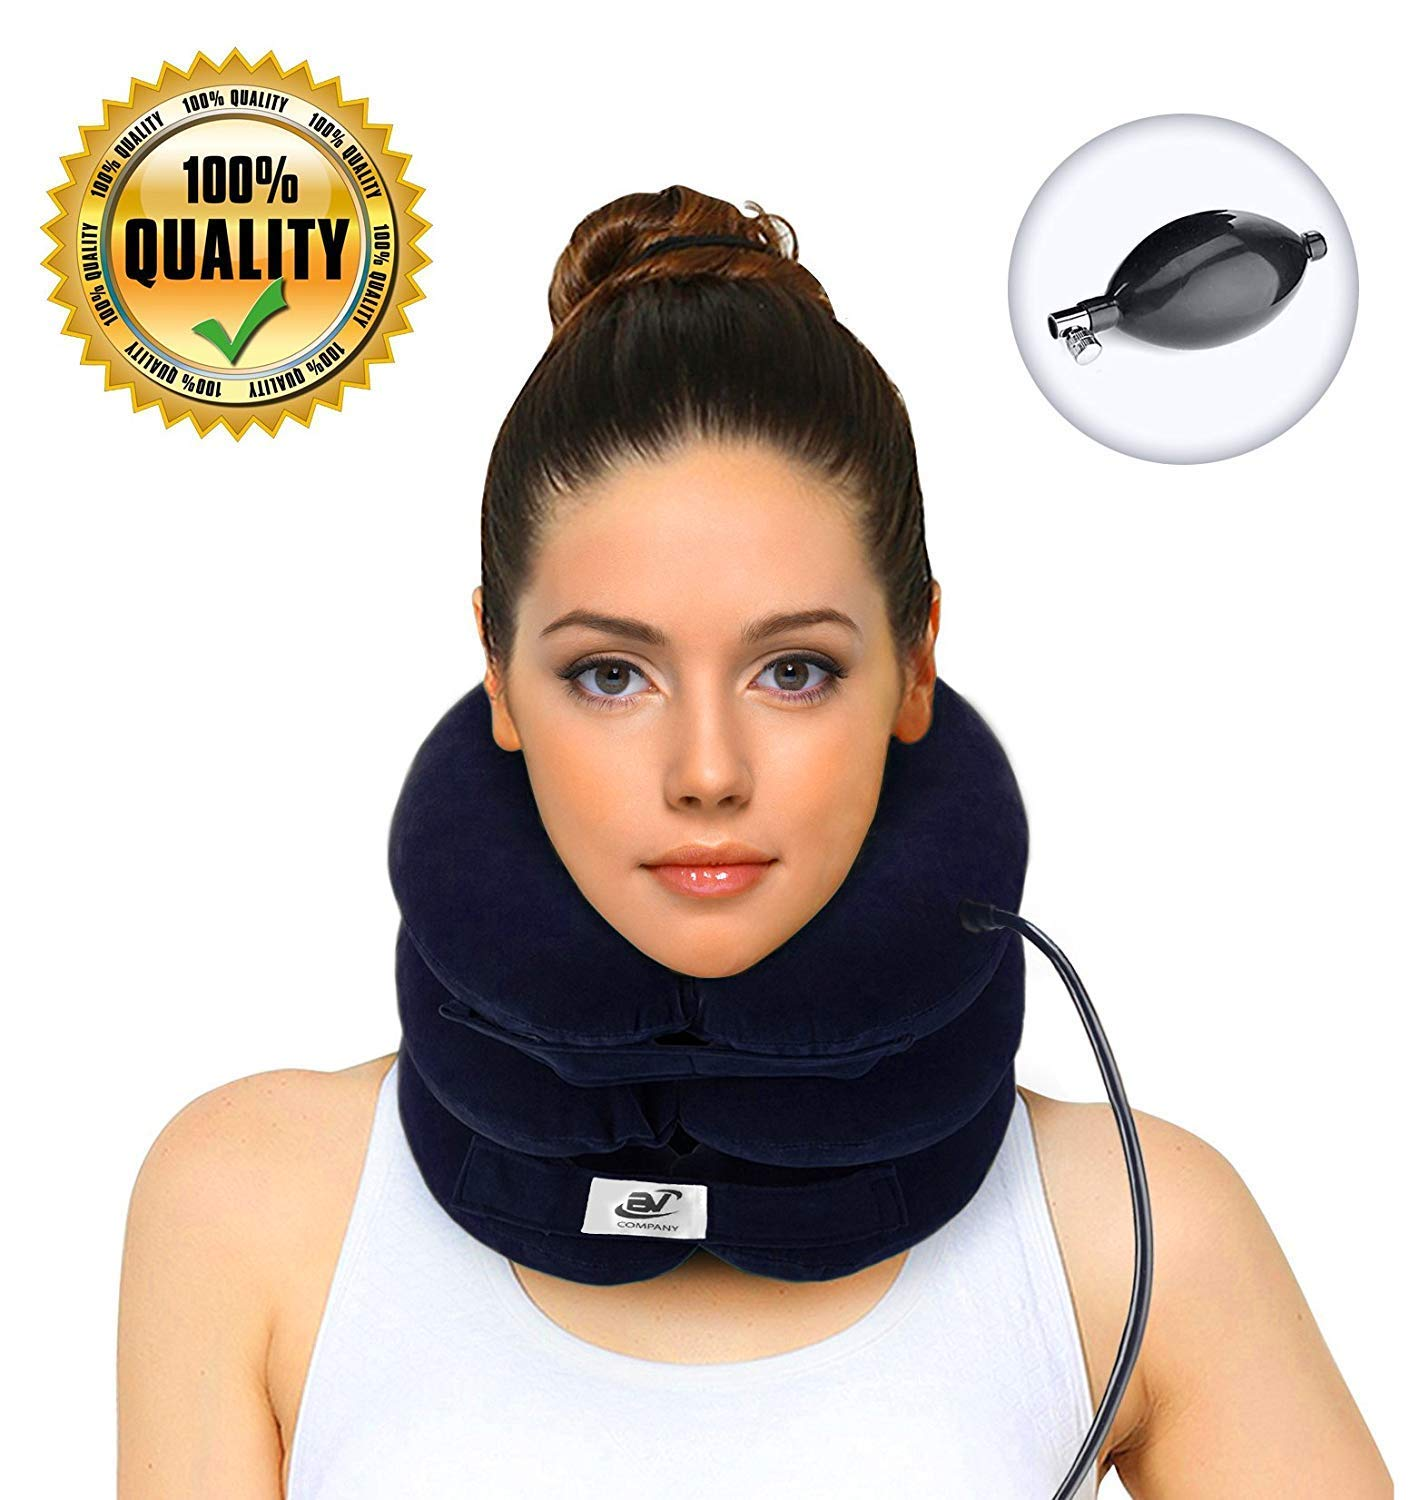 Hodilu Cervical Neck Traction Device – Improve Spine Alignment to Reduce Neck Pain – Cervical Pillow with Collar Adjustable | Bonus Extra Pump